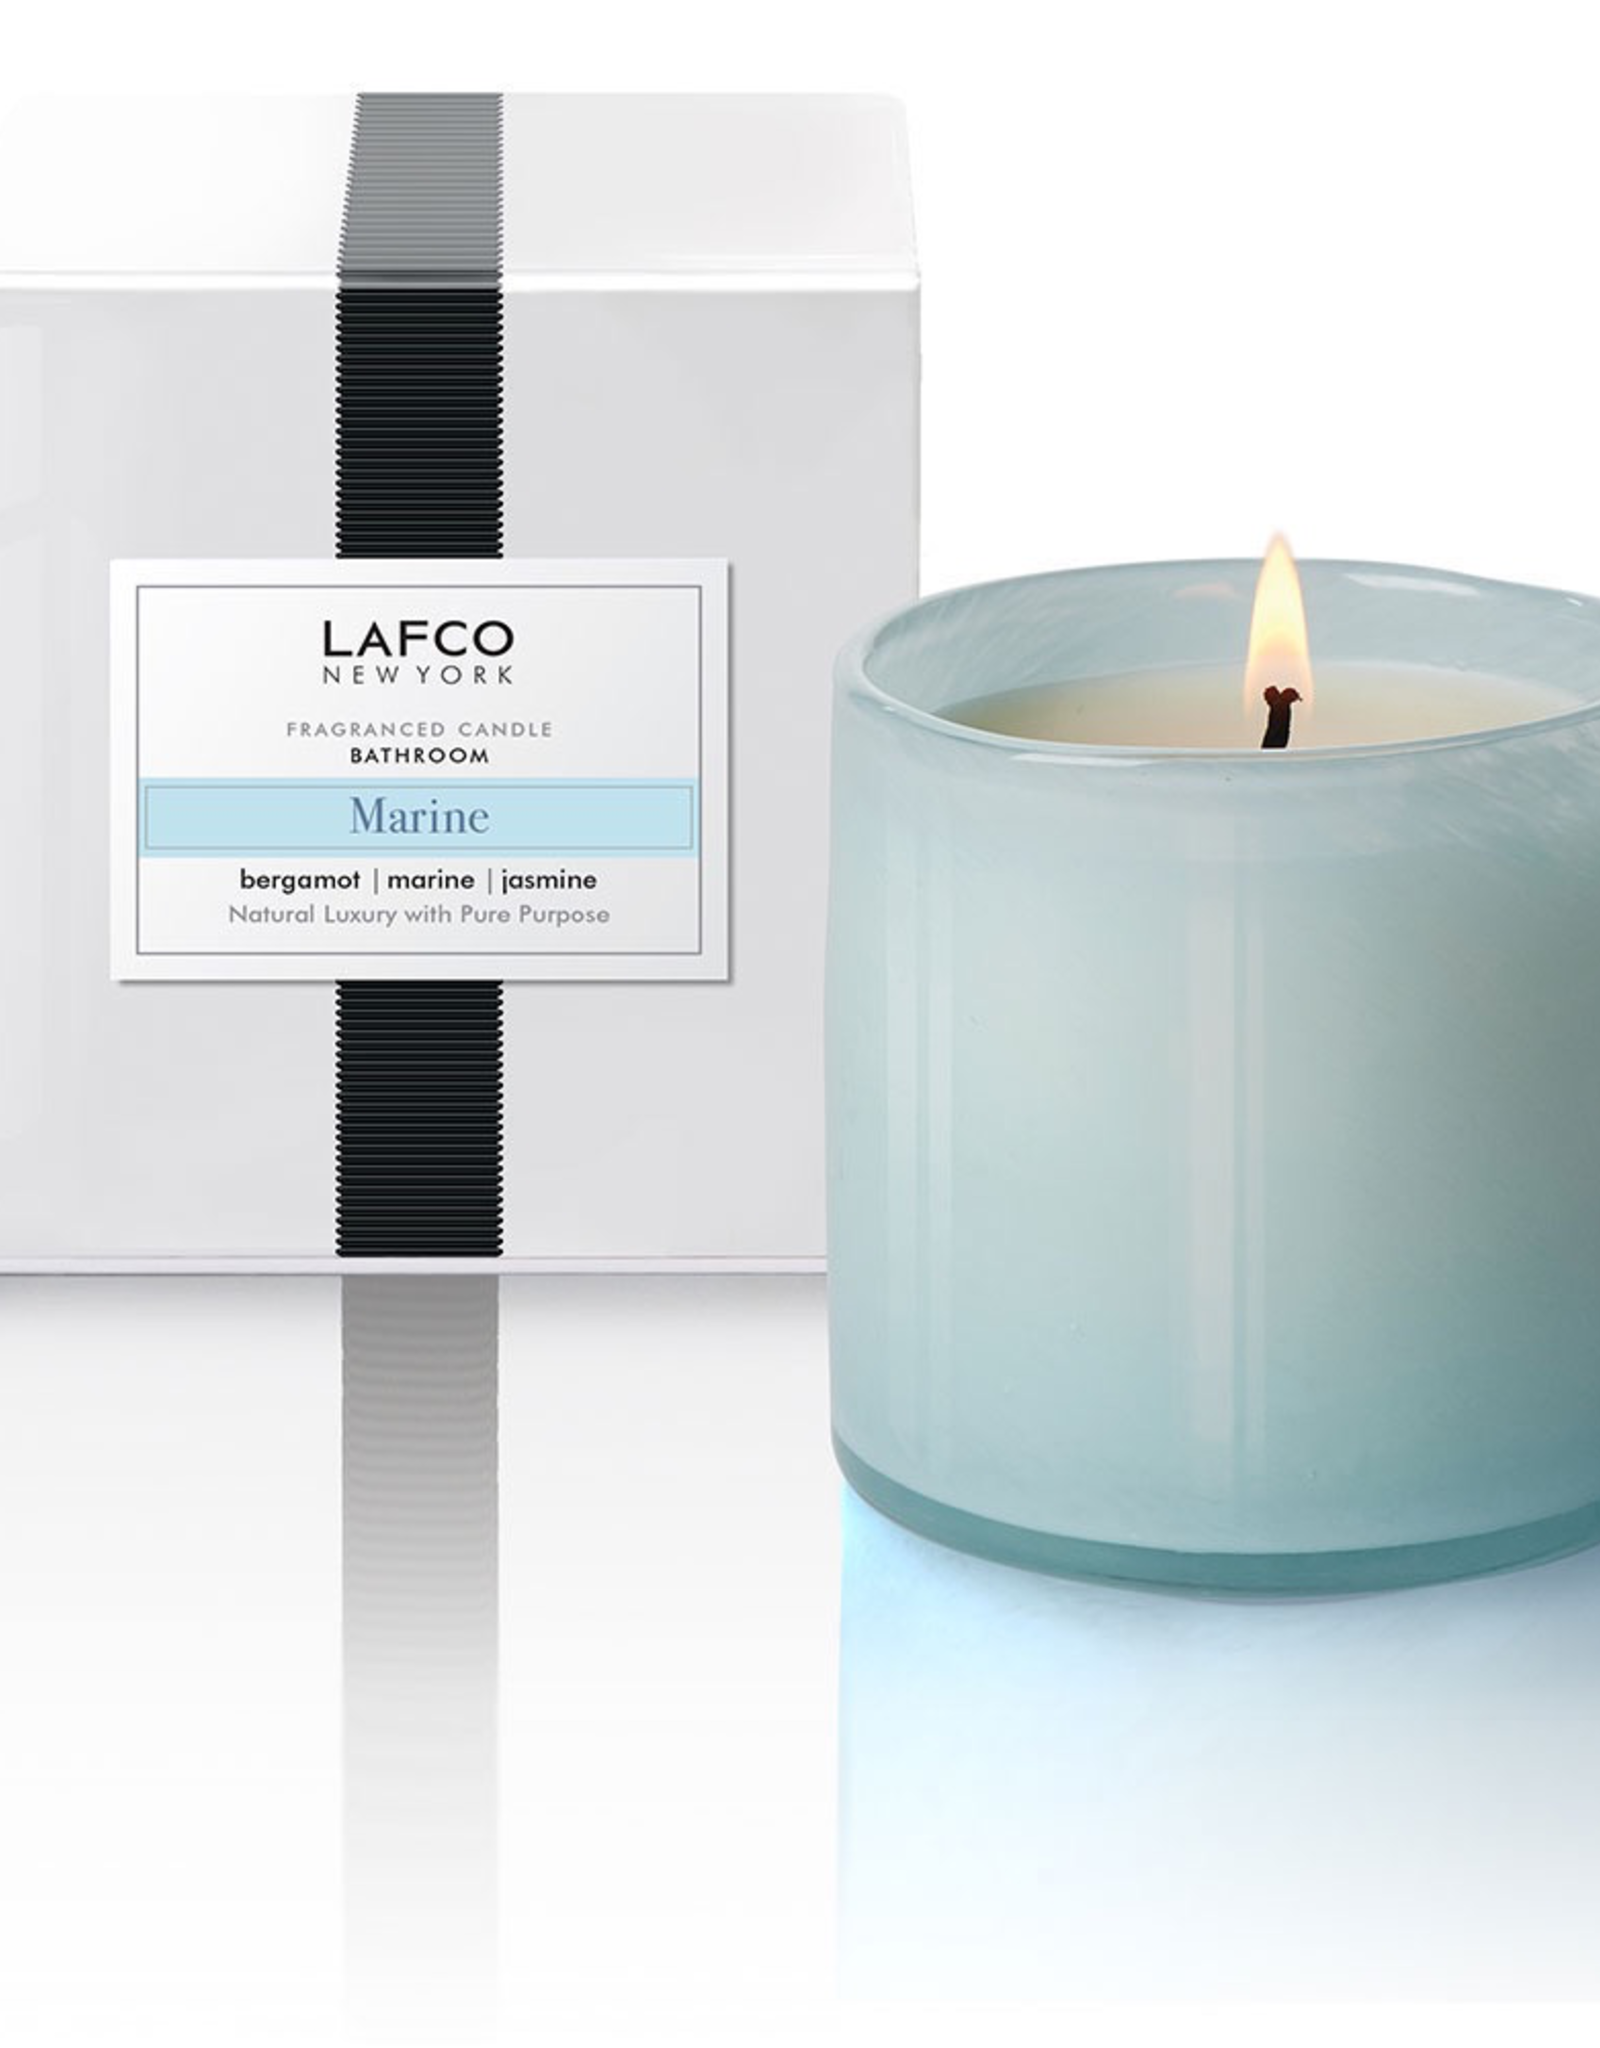 Marine Bathroom Lafco Candle